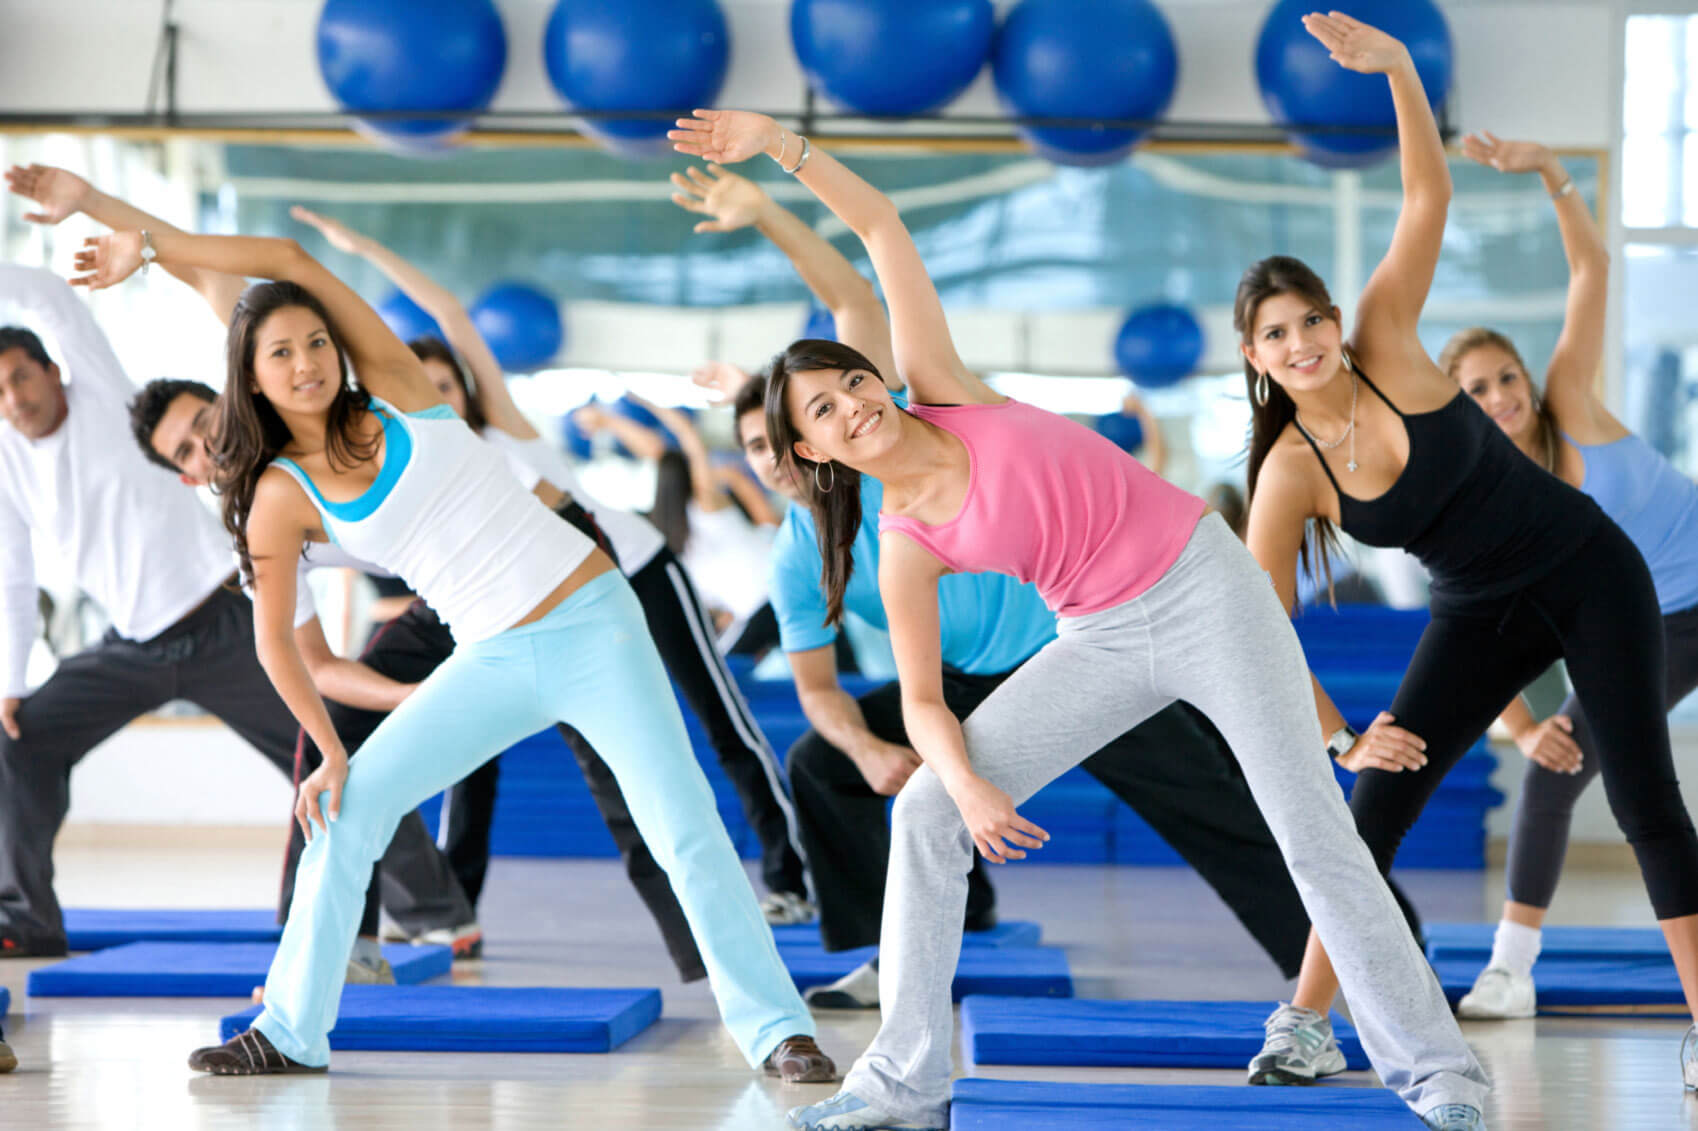 Losing Weight with Aerobics